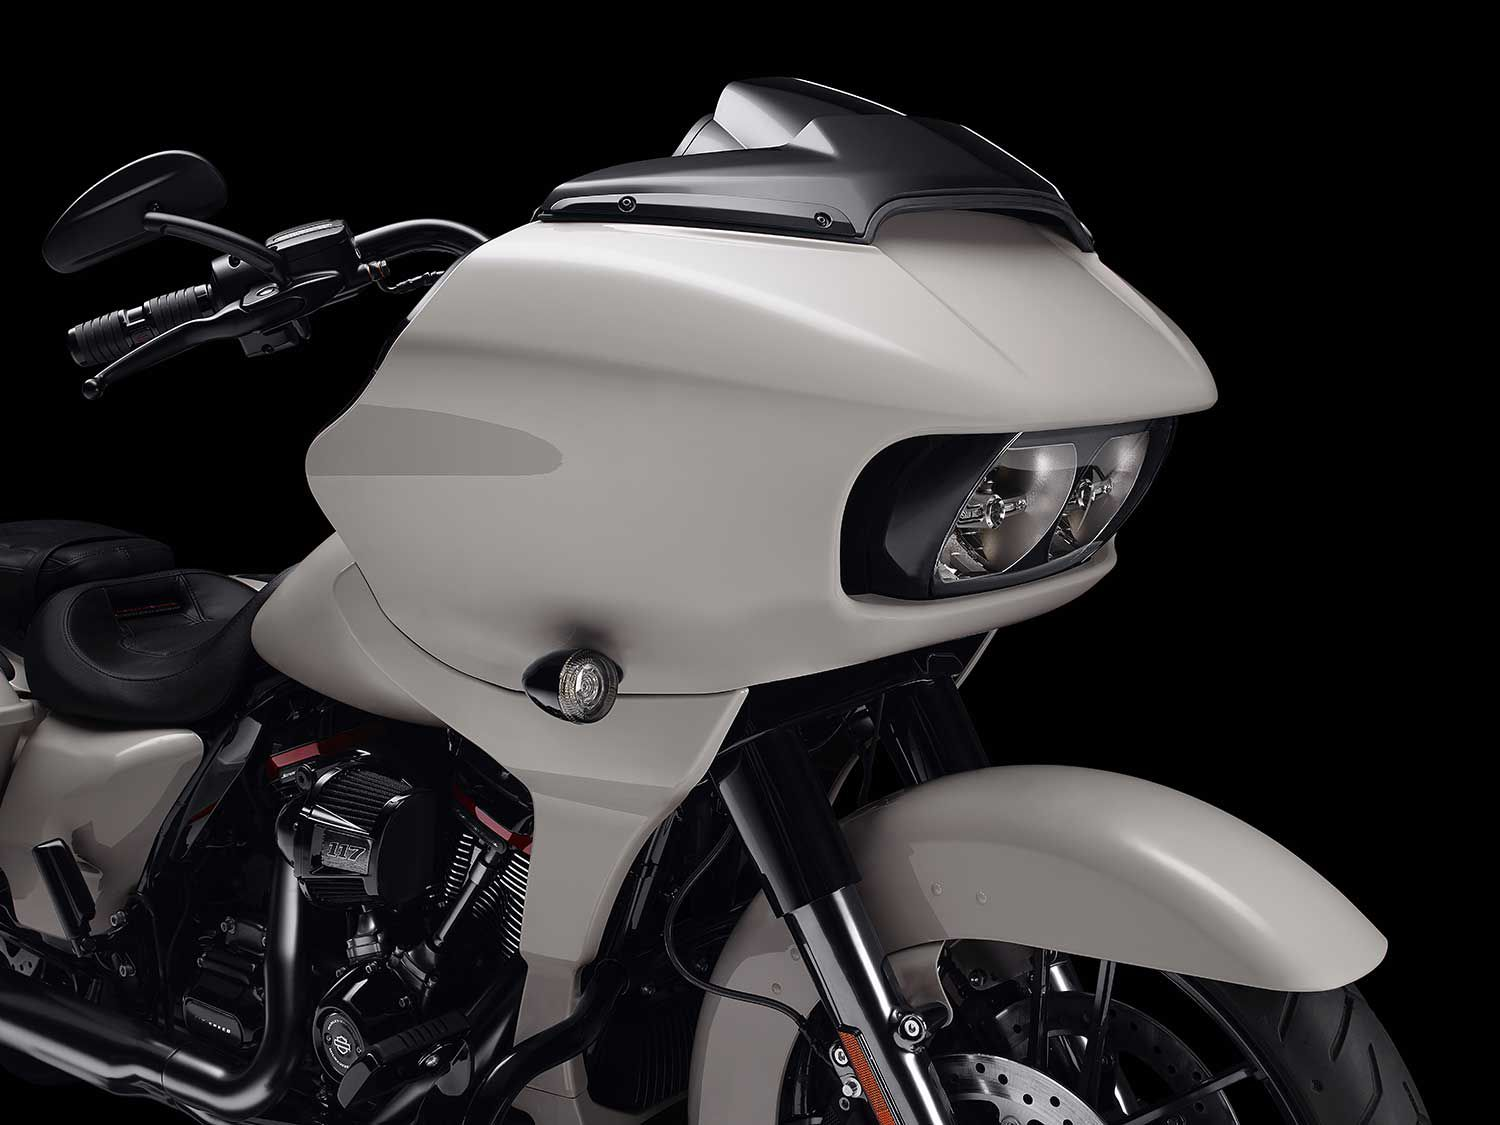 An aerodynamically tested and developed fairing promises smooth high-speed riding.